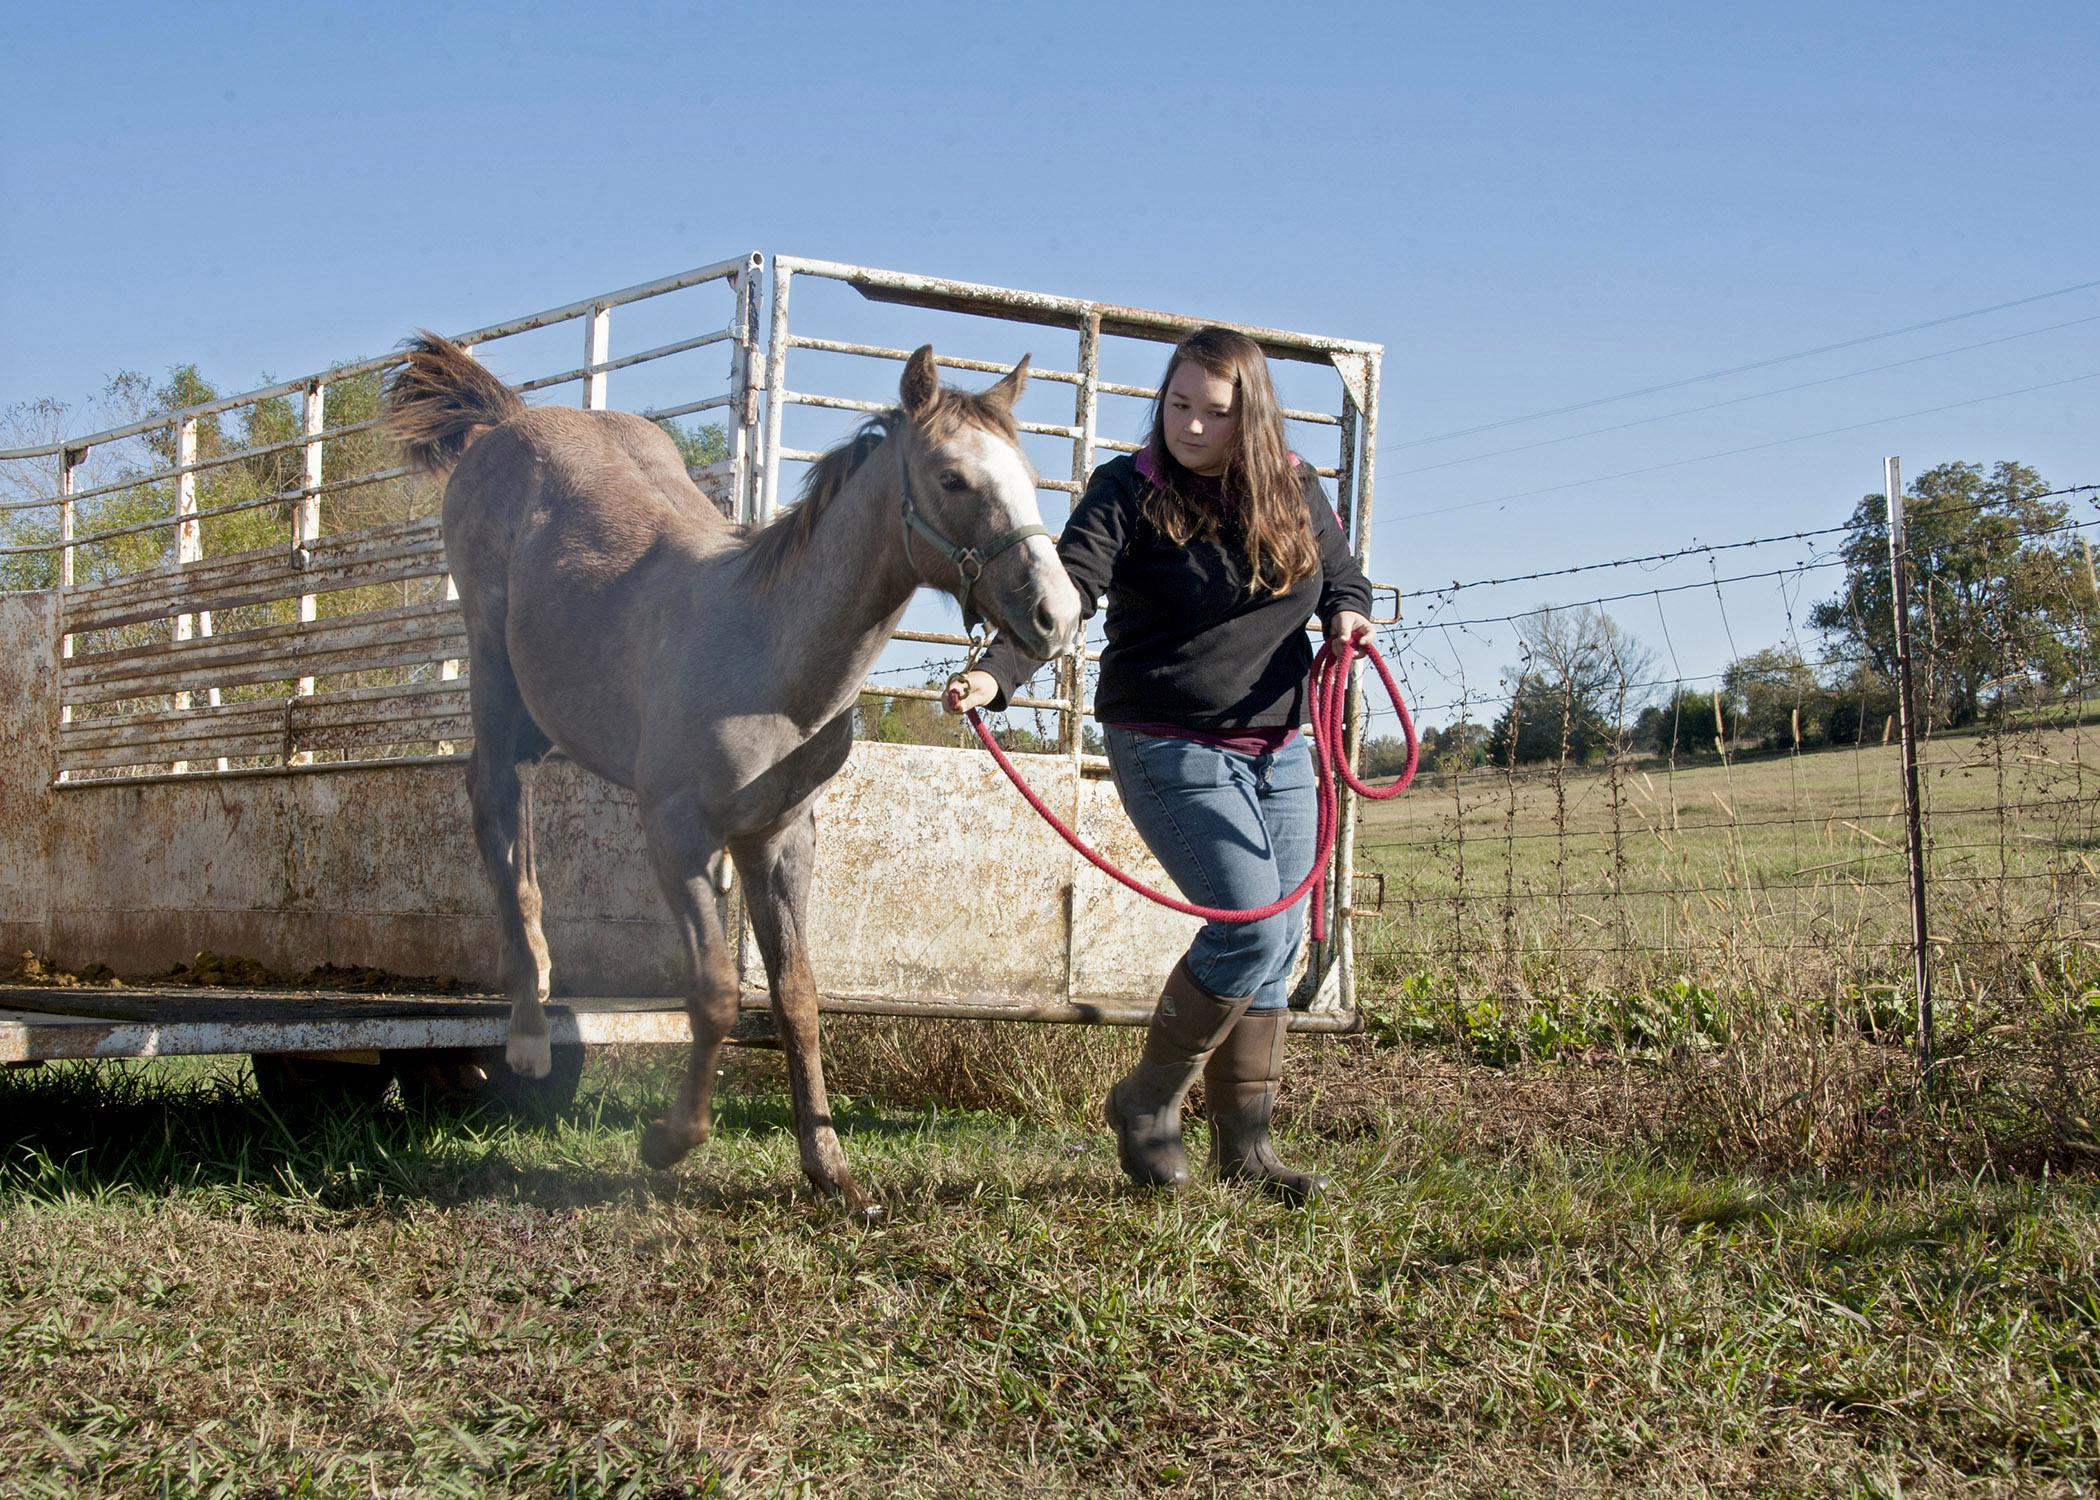 Callie Cornelison of Scottsboro, Ala., a senior studying animal and dairy sciences at Mississippi State University, practices loading and unloading from a trailer with Leroy, a horse up for bid in an online auction running Nov. 1-21. (Photo by MSU Ag Communications/Kat Lawrence)